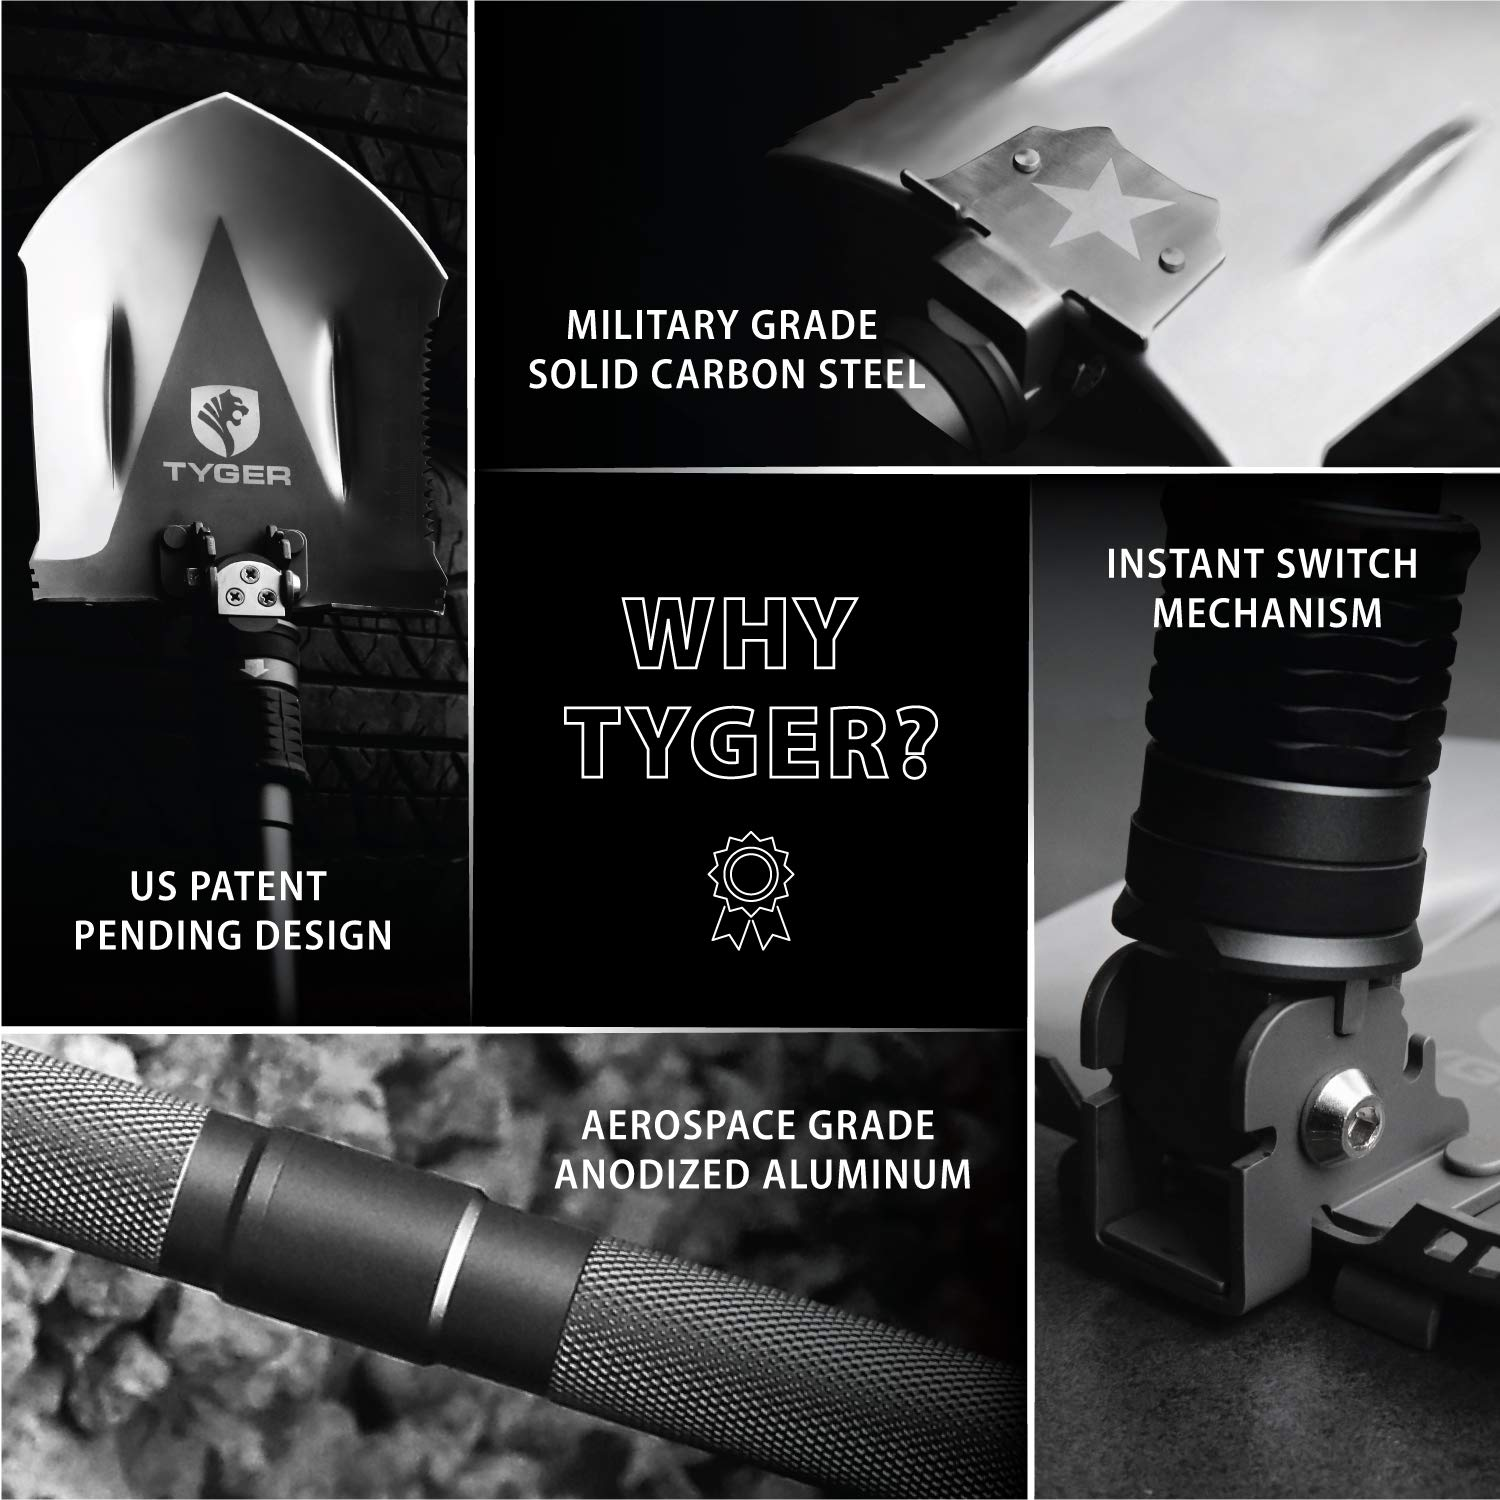 Tyger Shovel TG-SV8U3217 Military Heavyduty Folding Compact Tool with 16-in-1 Multifunction for Off-Roading, Camping, Outdoor, Survivalist and Emergency by Tyger Auto (Image #4)